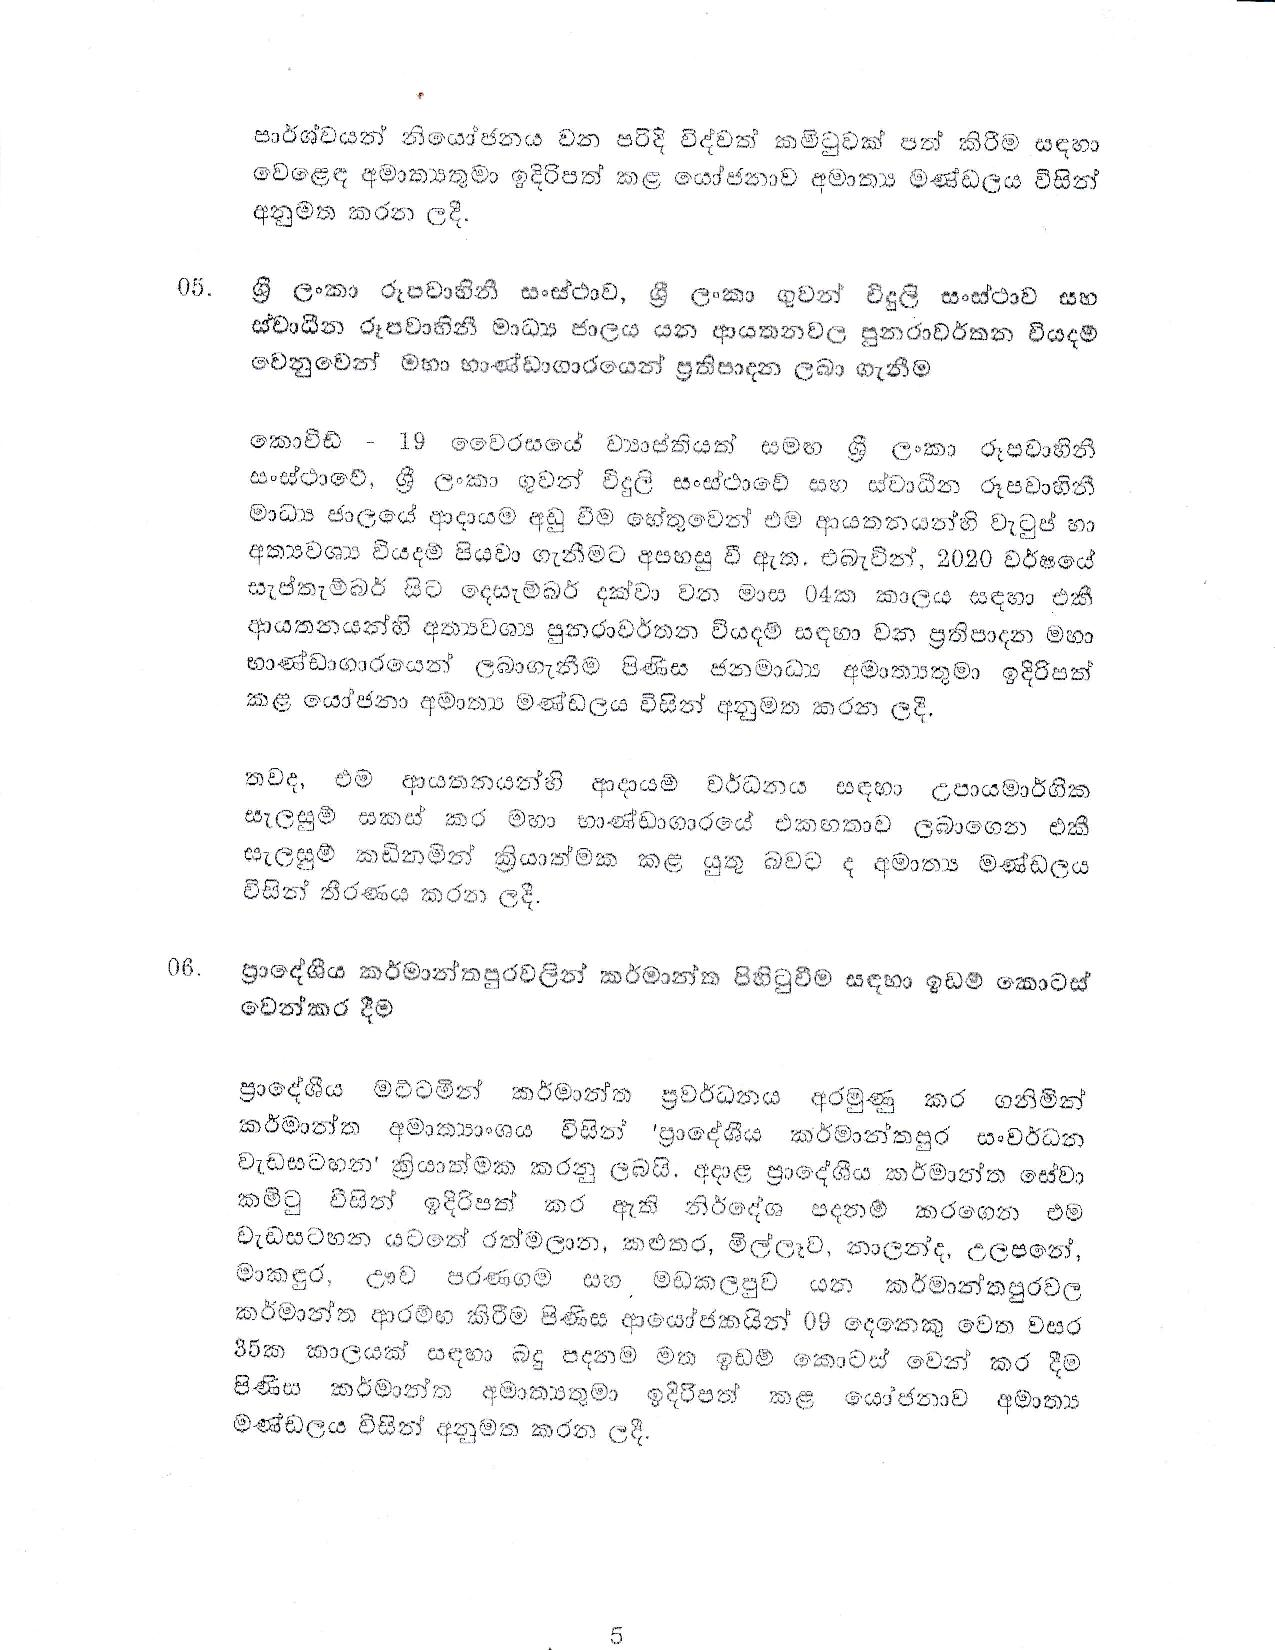 Cabinet Decision on 02.09.2020 Sinhala page 005